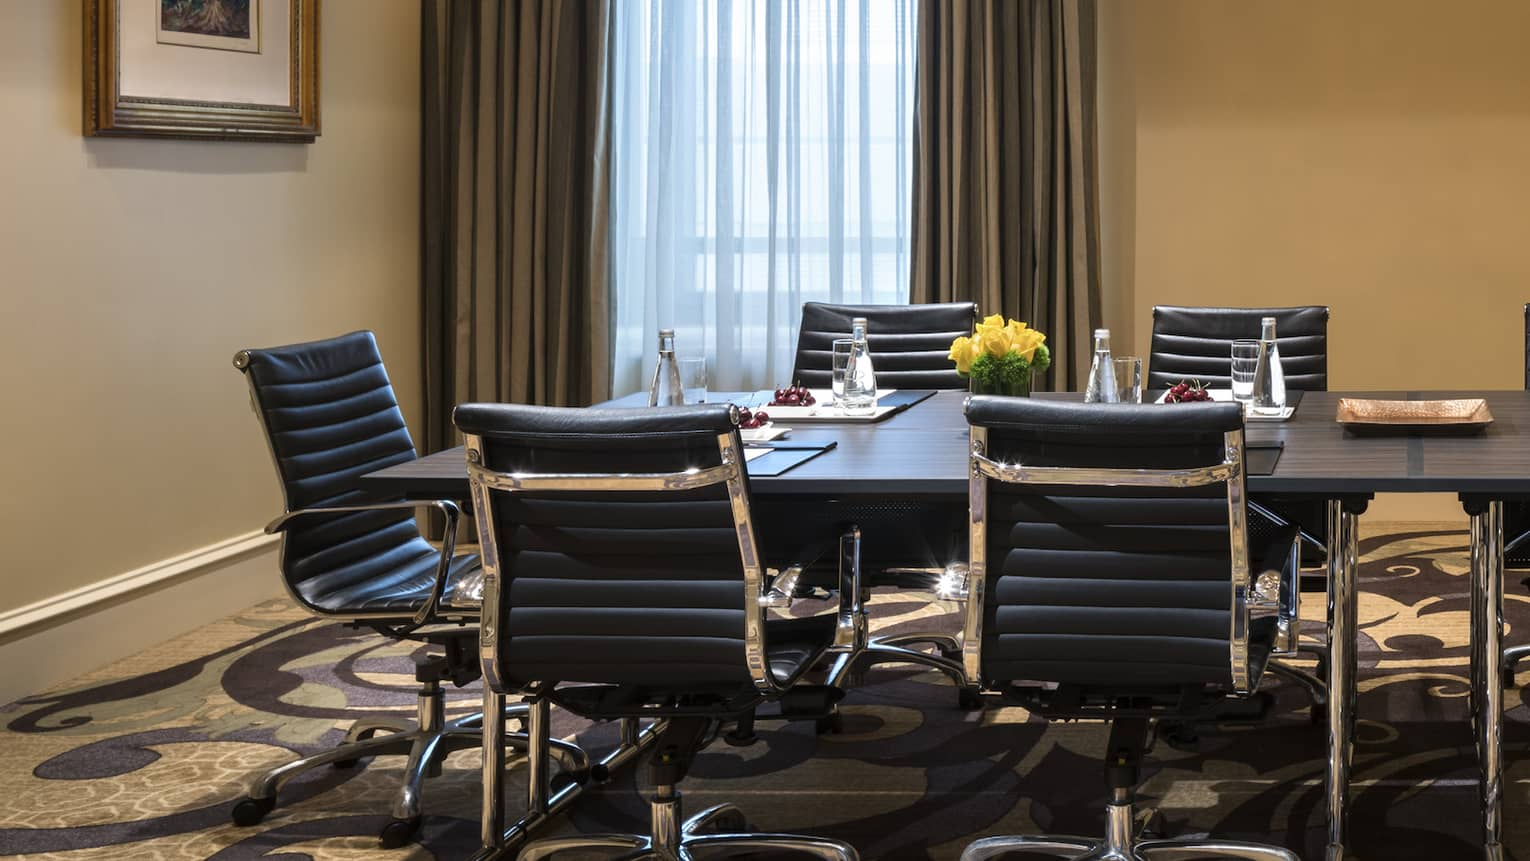 Long boardroom meeting table with leather swivel chairs